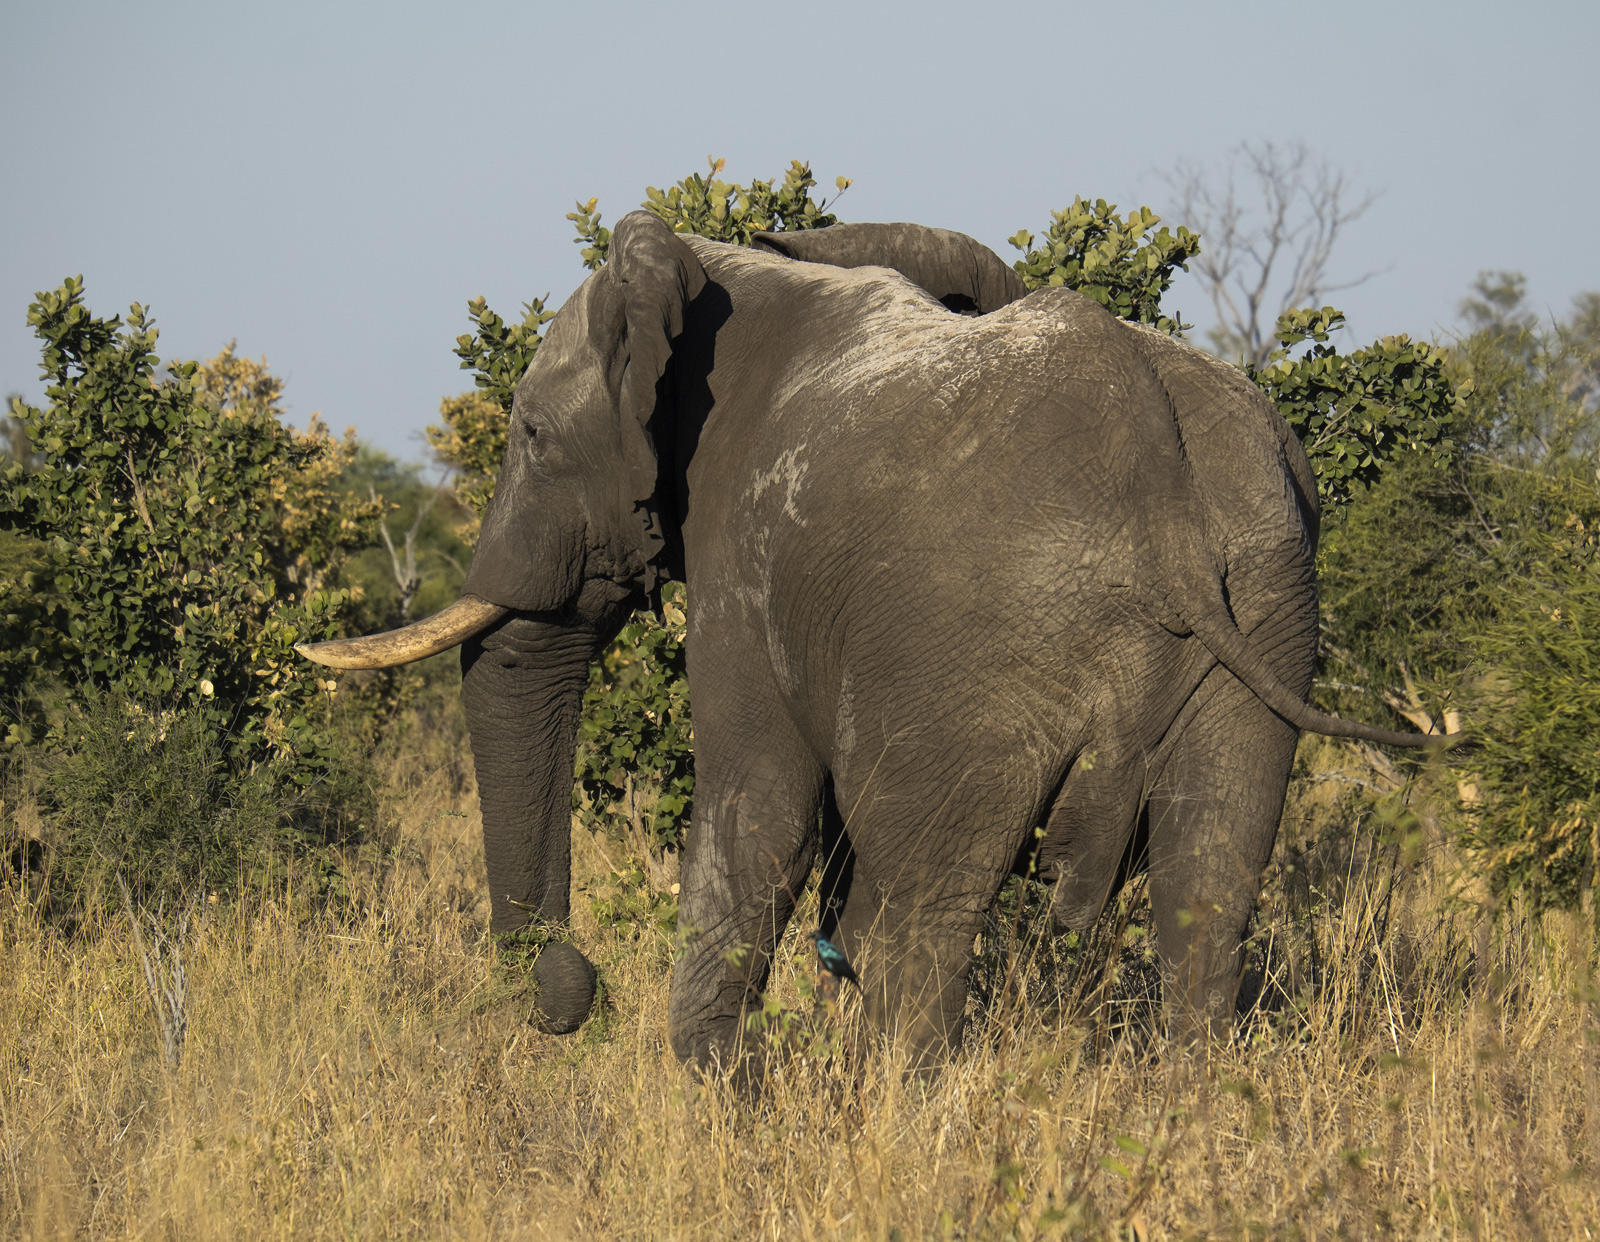 Elephant and Roller, Elephant Sands, Botswana, Africa, elephant, game drive, evening, male, trees, stripping, blue, photo